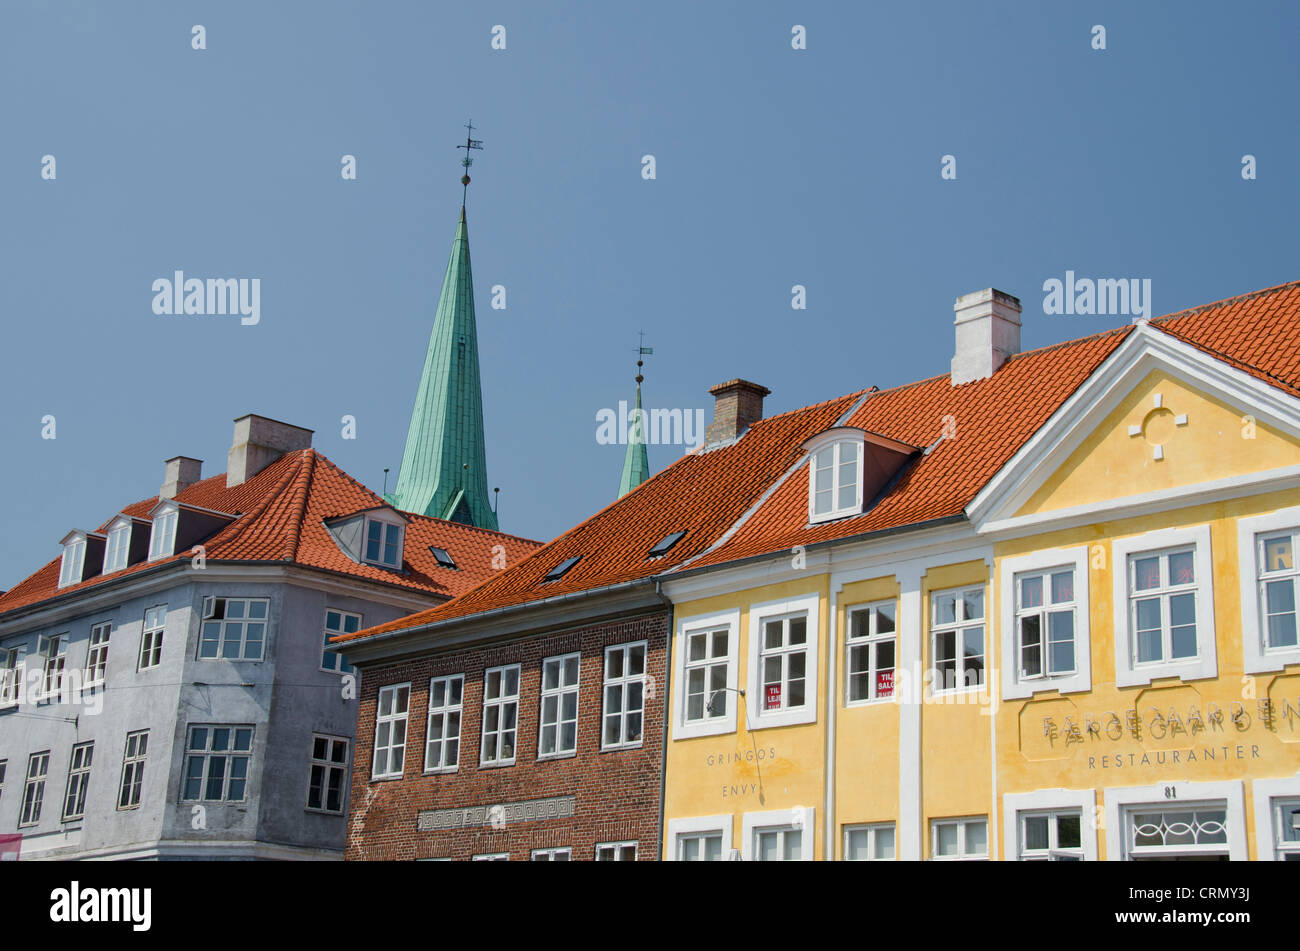 Denmark, Helsingoer. Typical downtown 15th-17th century architecture. - Stock Image